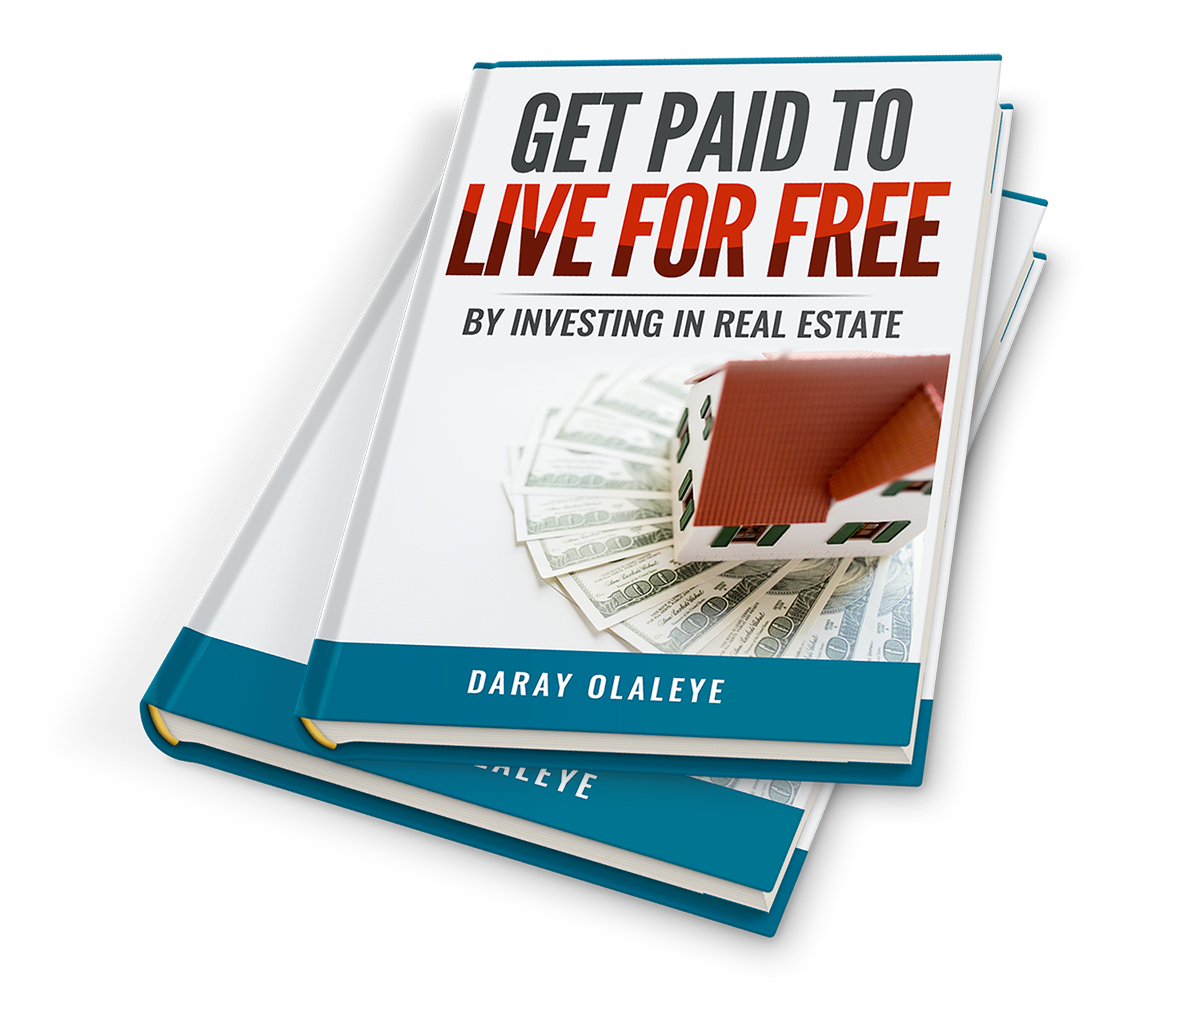 Get_paid_to_live2